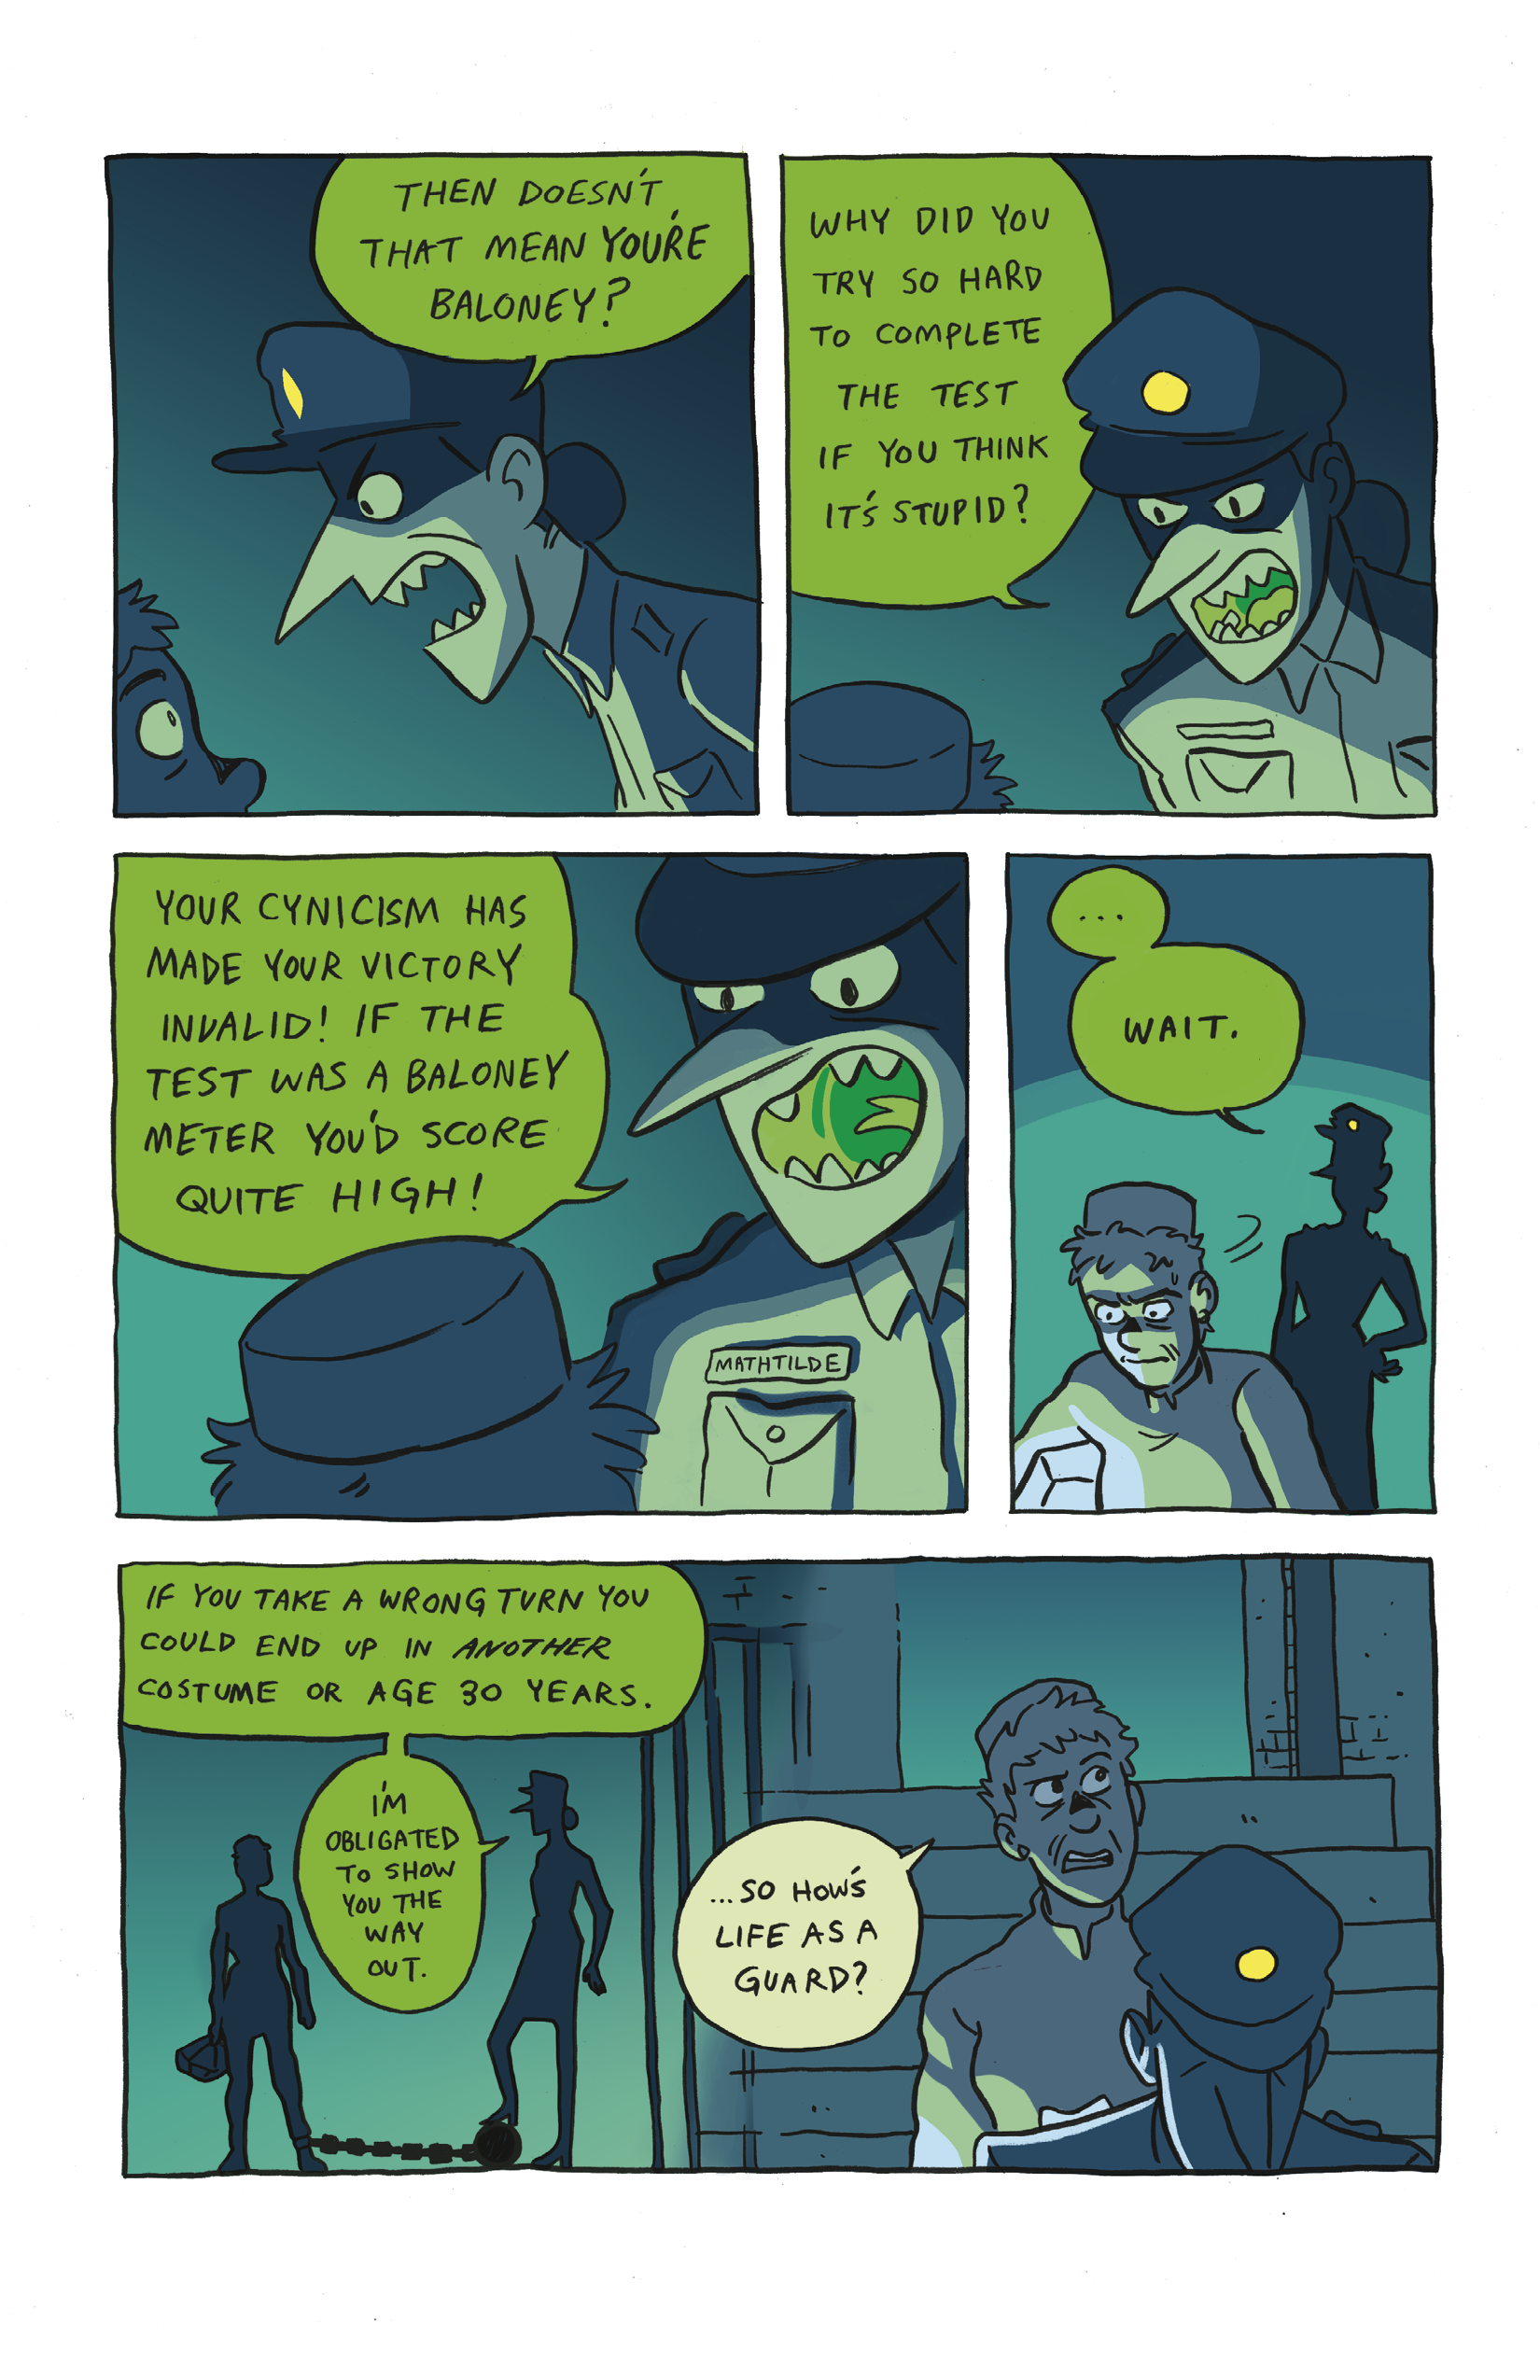 METANOIA_final_001_single_pages14.png